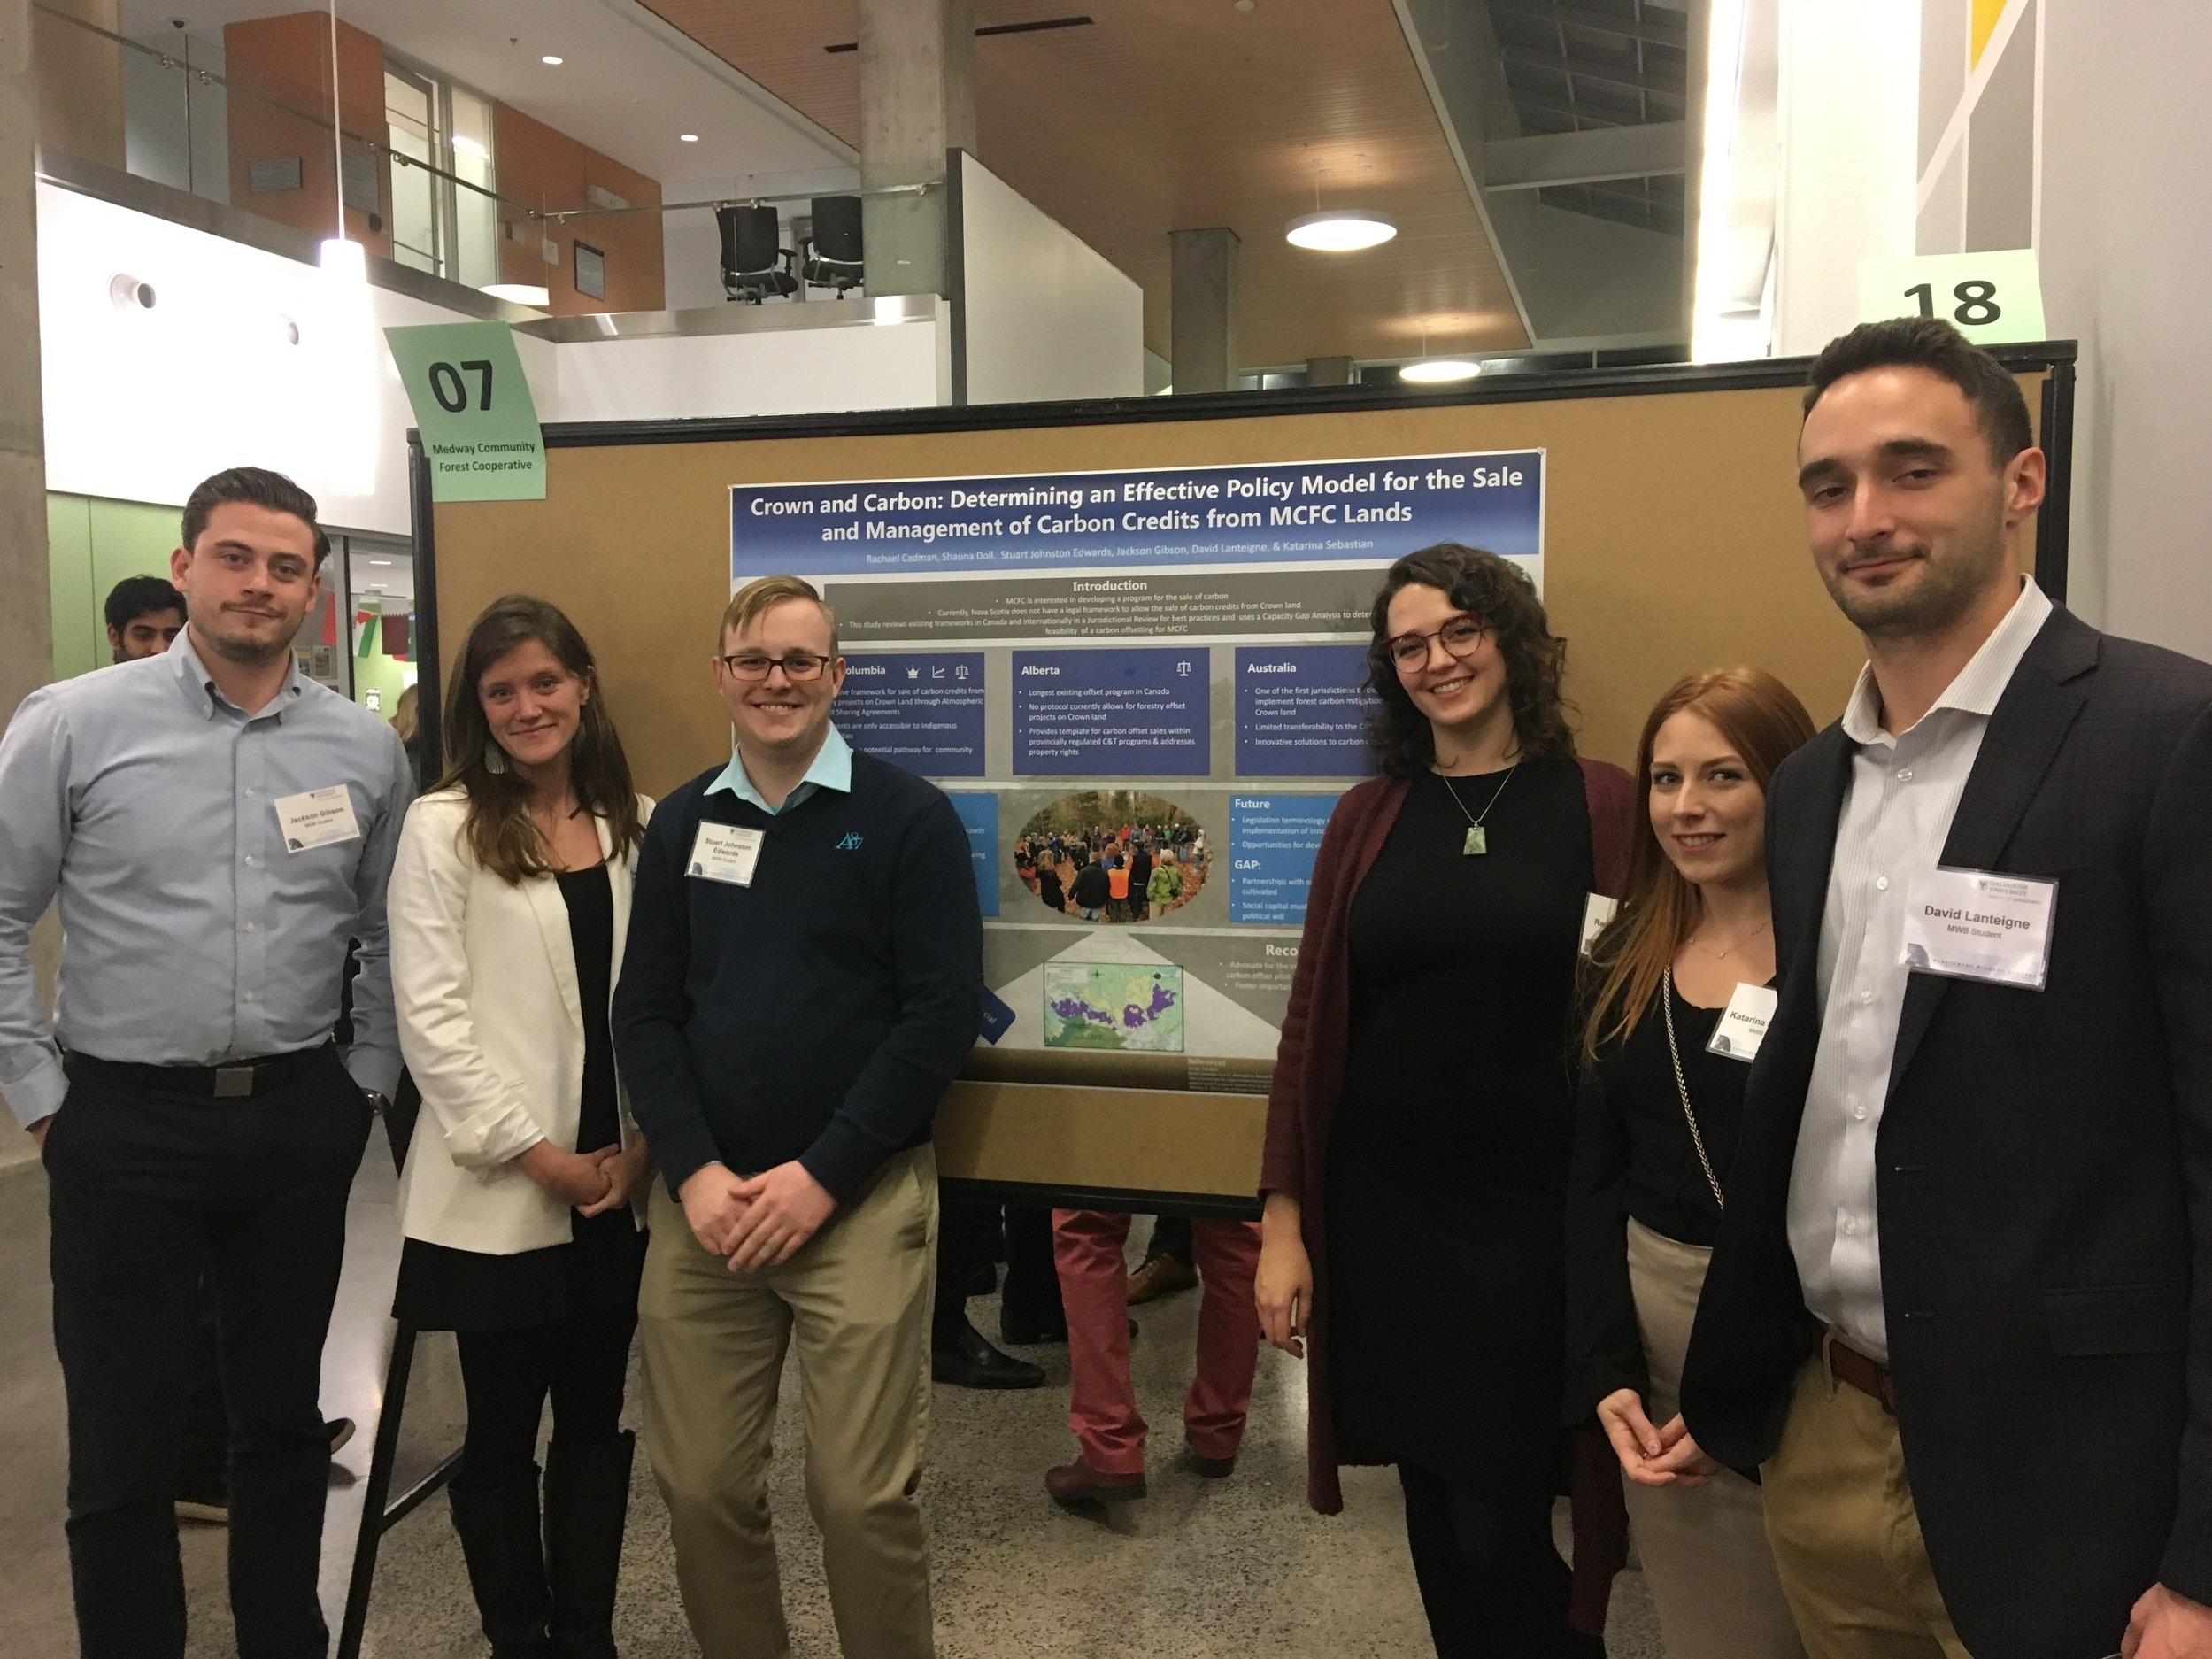 Management without Borders students with their Crown and Carbon research poster at Dalhousie University in December 2017.